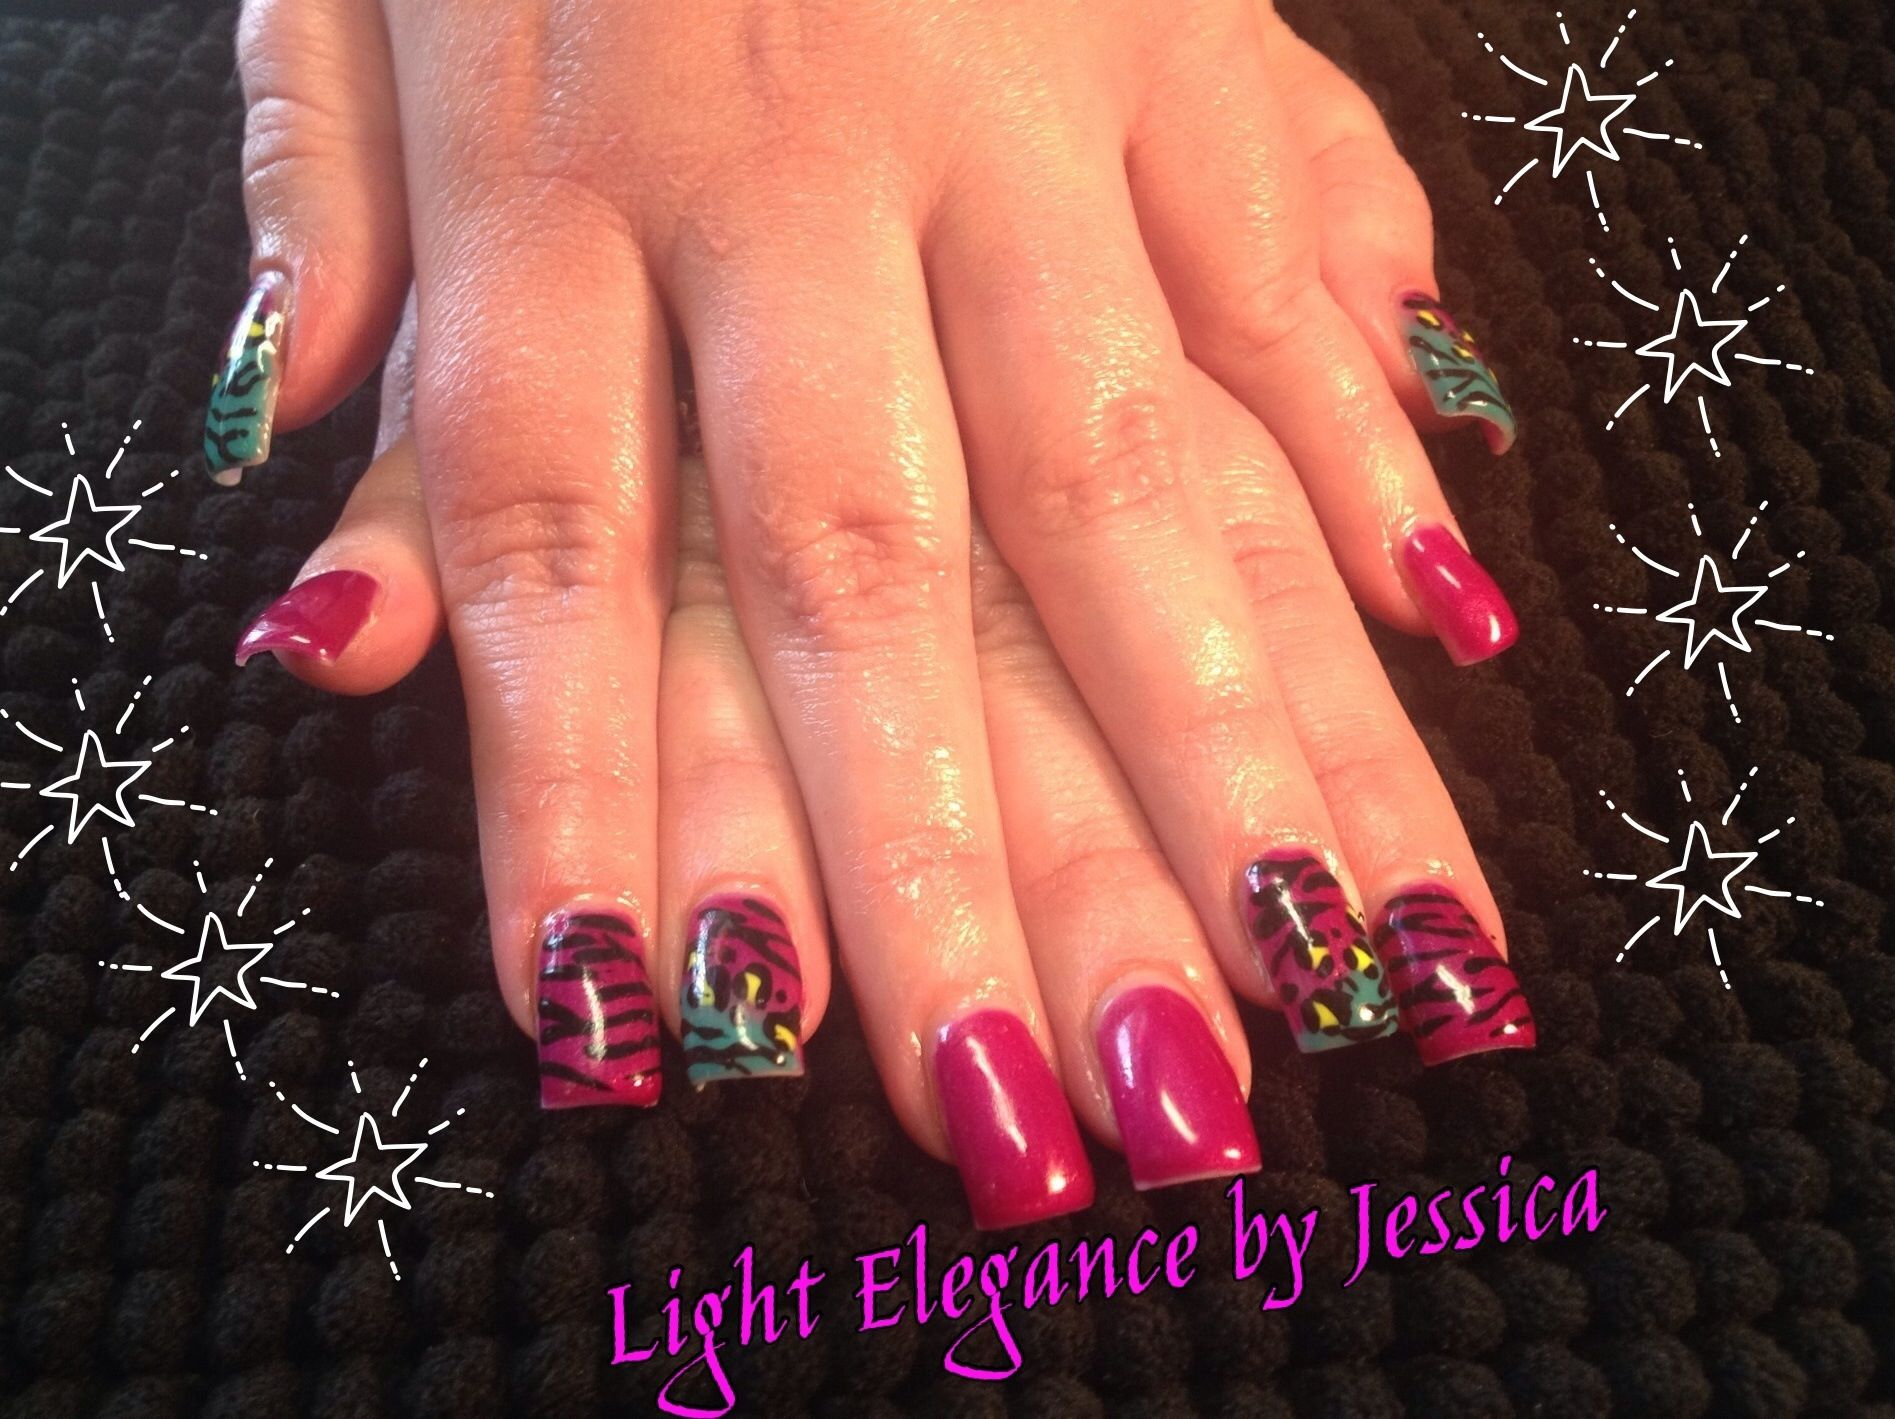 Light Elegance Gel nails. Nail art zebra stripes and cheetah print ...